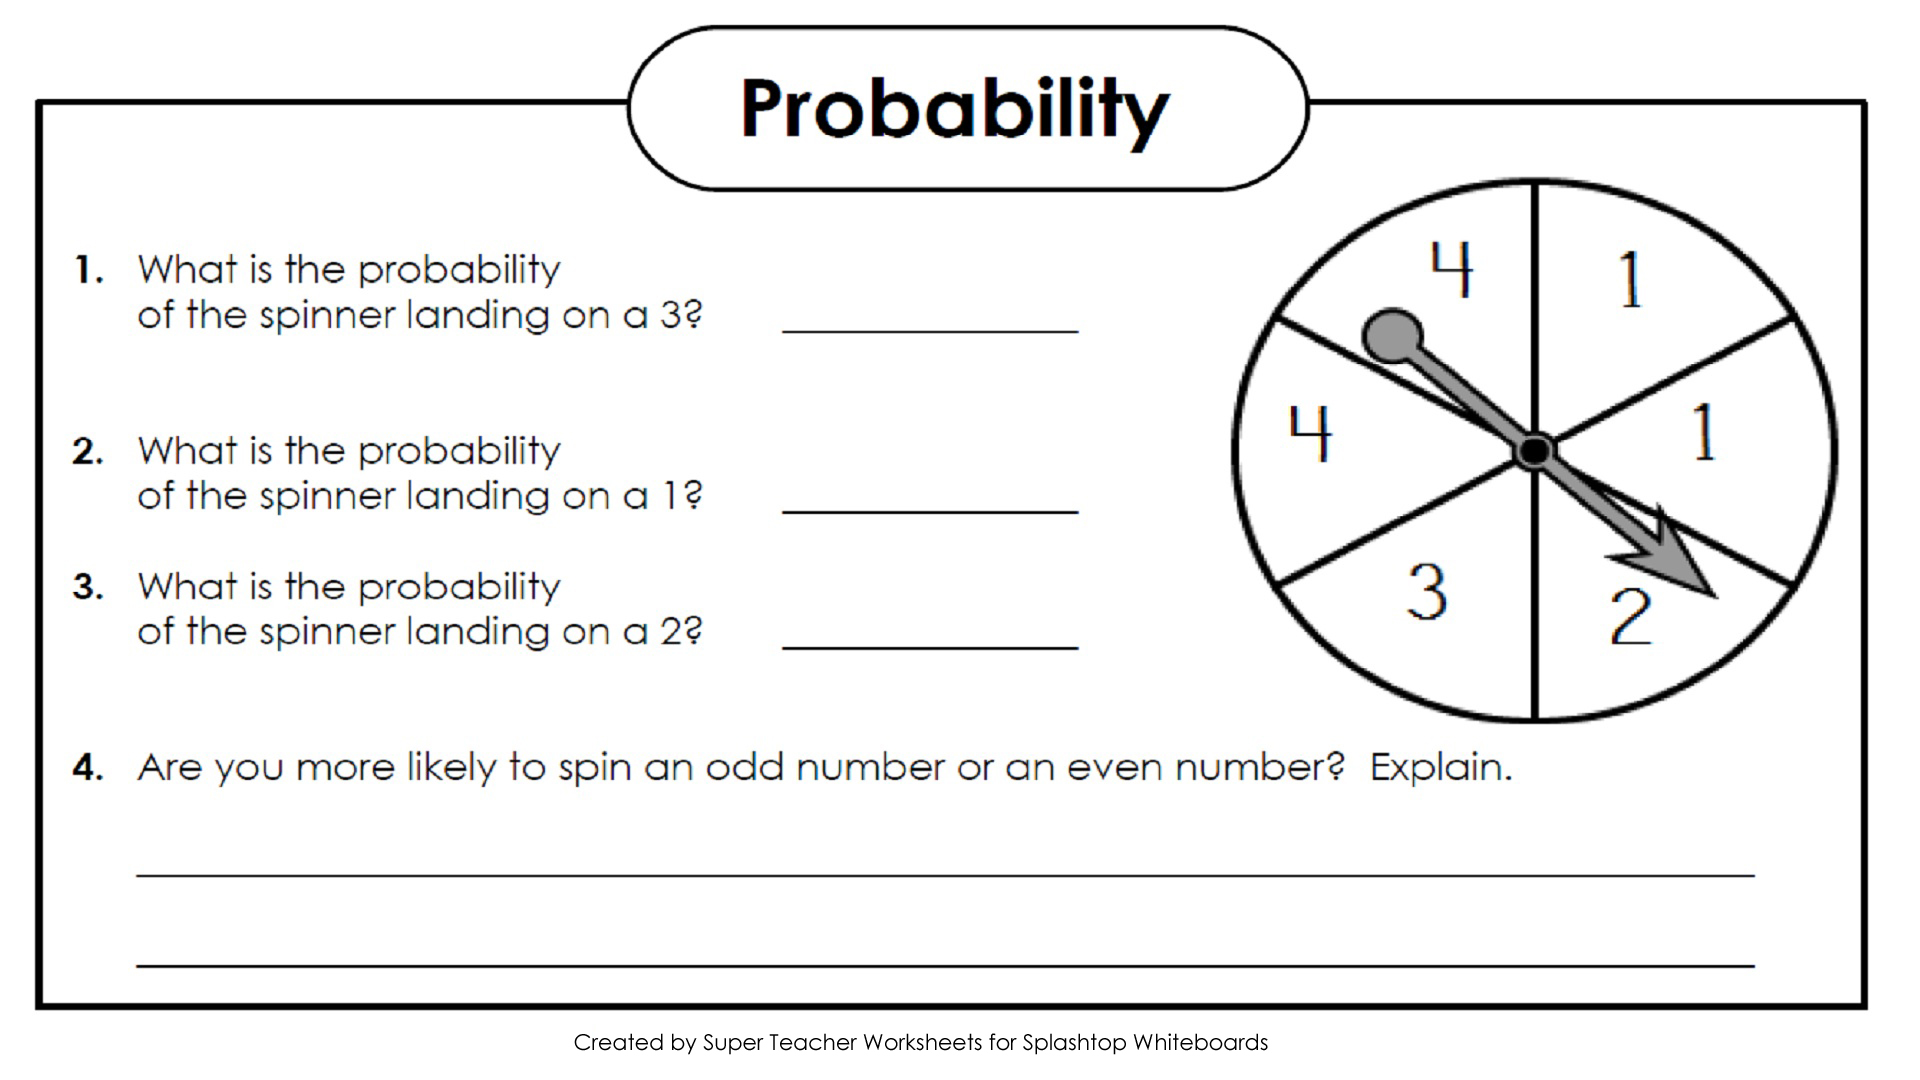 Worksheets Super Teacher Math Worksheets splashtop whiteboard background graphics probability spinner 1